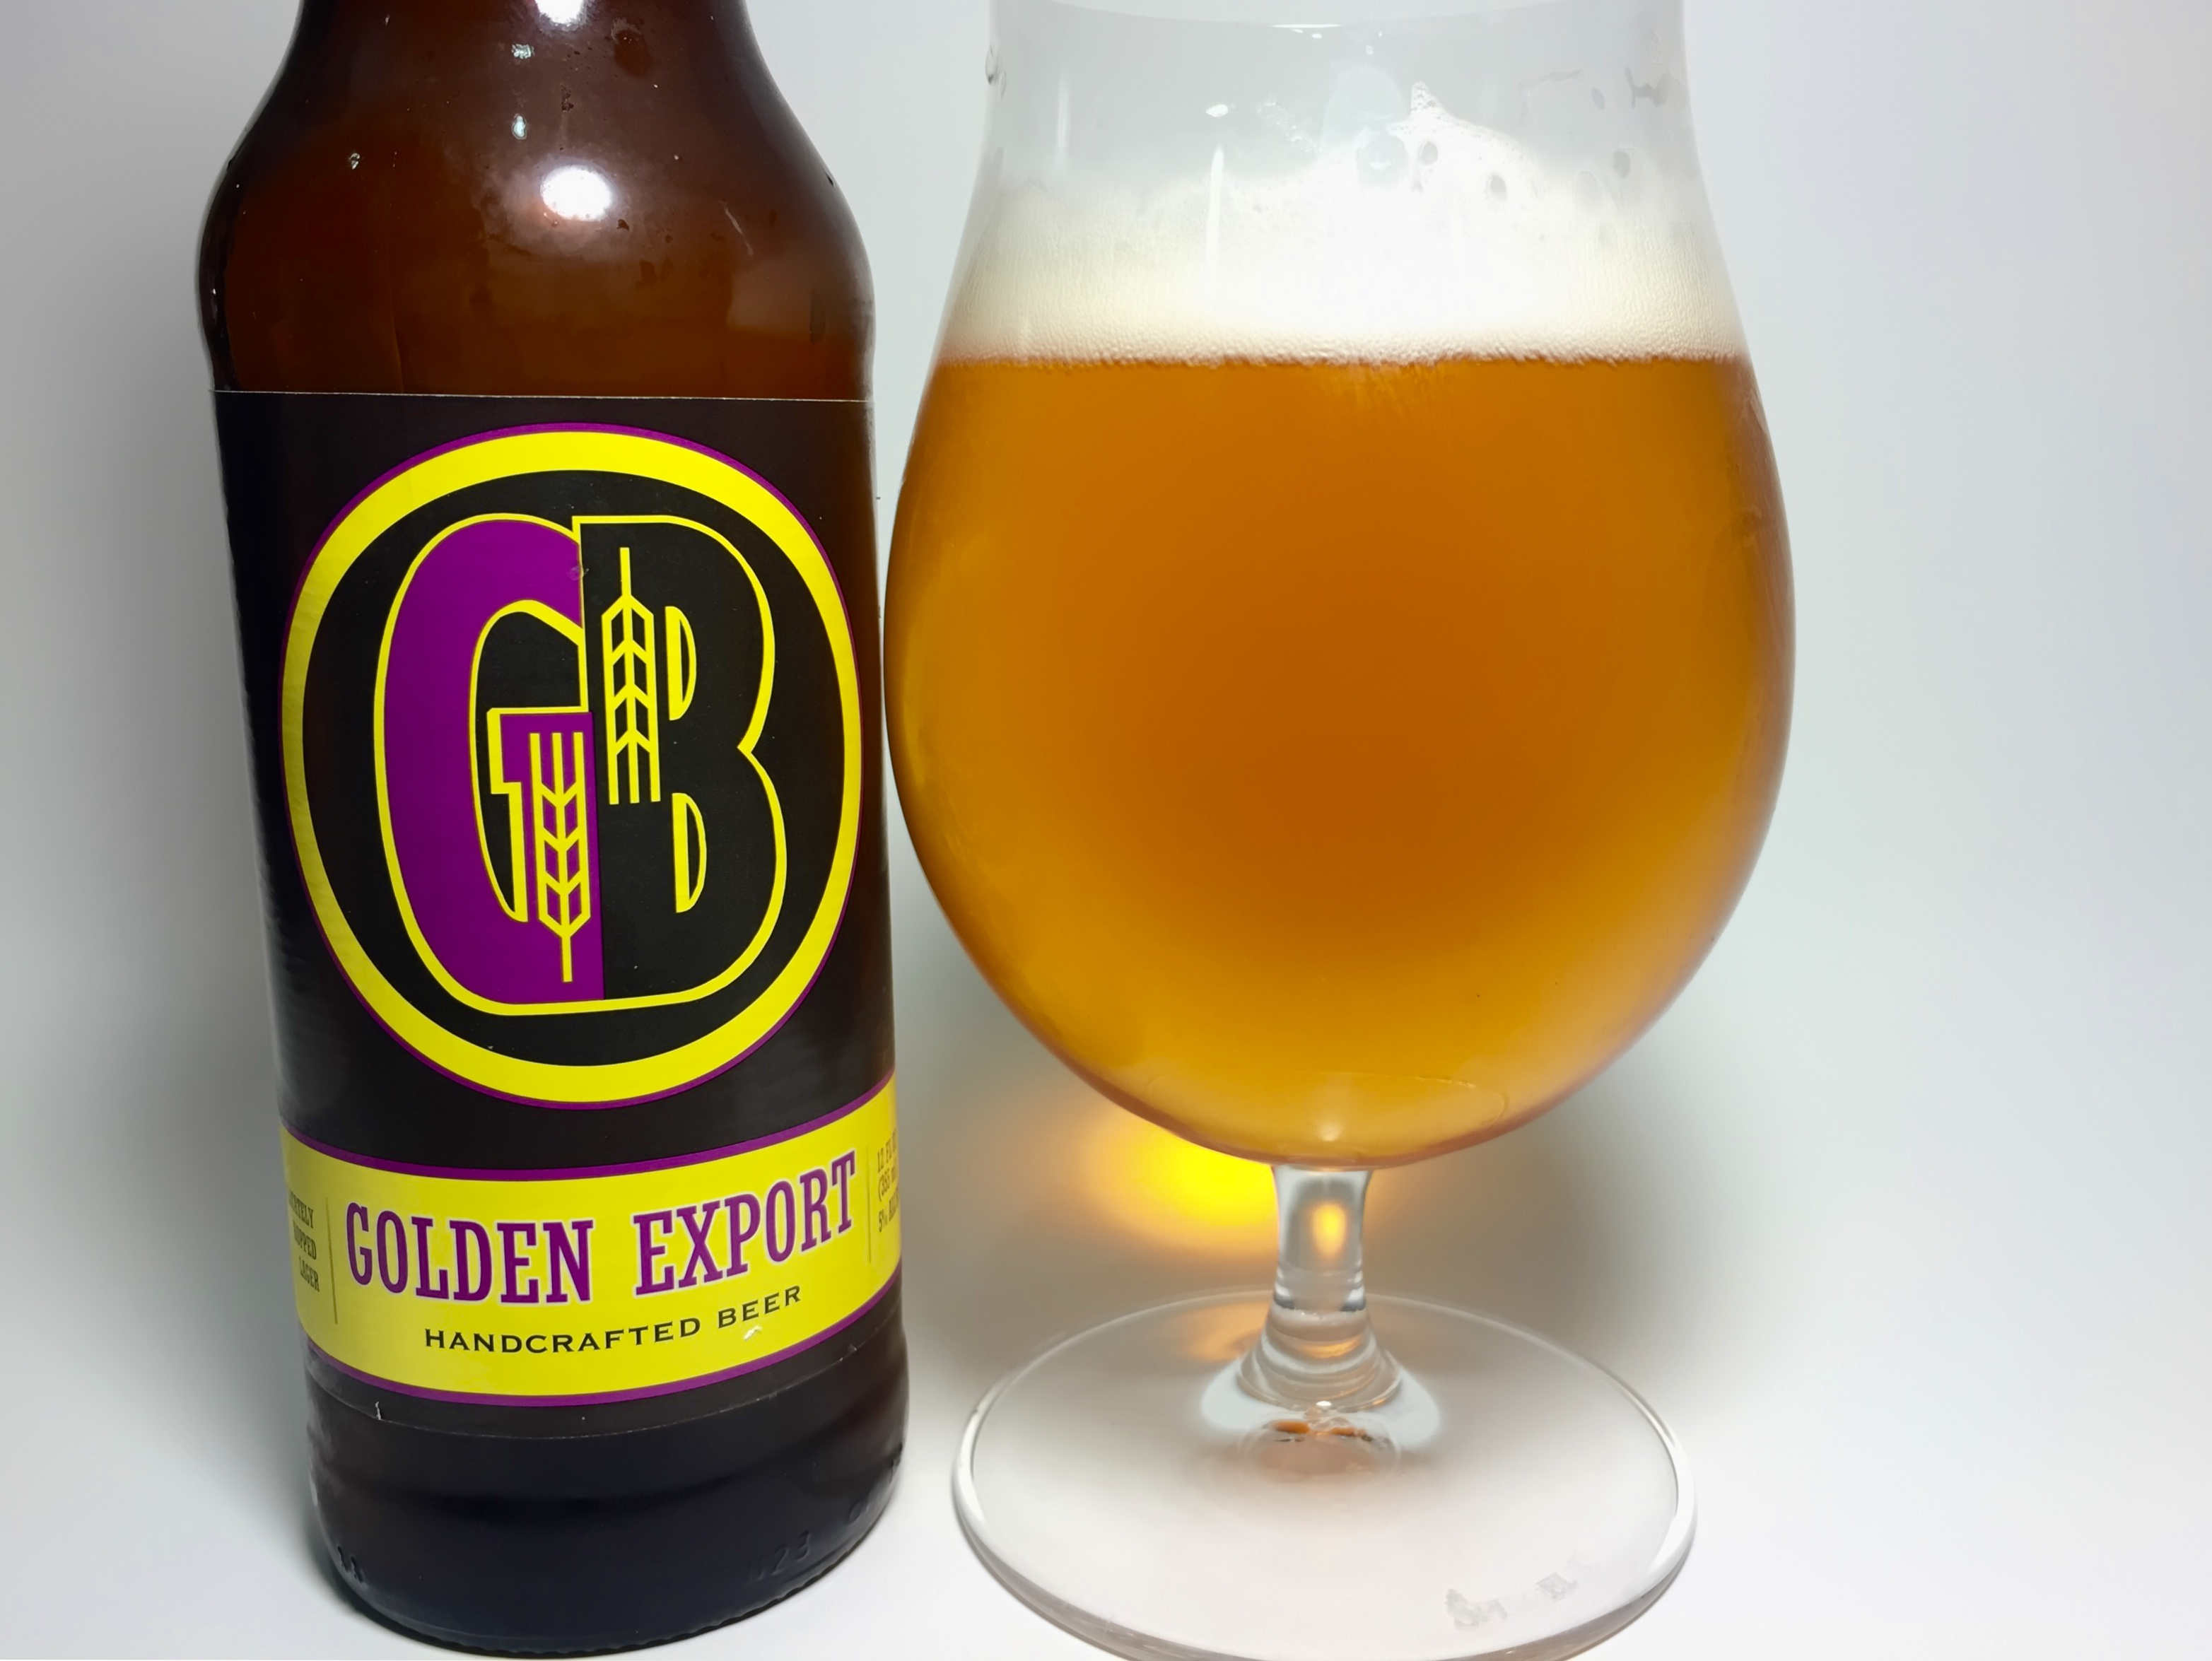 Gordon Biersch Golden Export